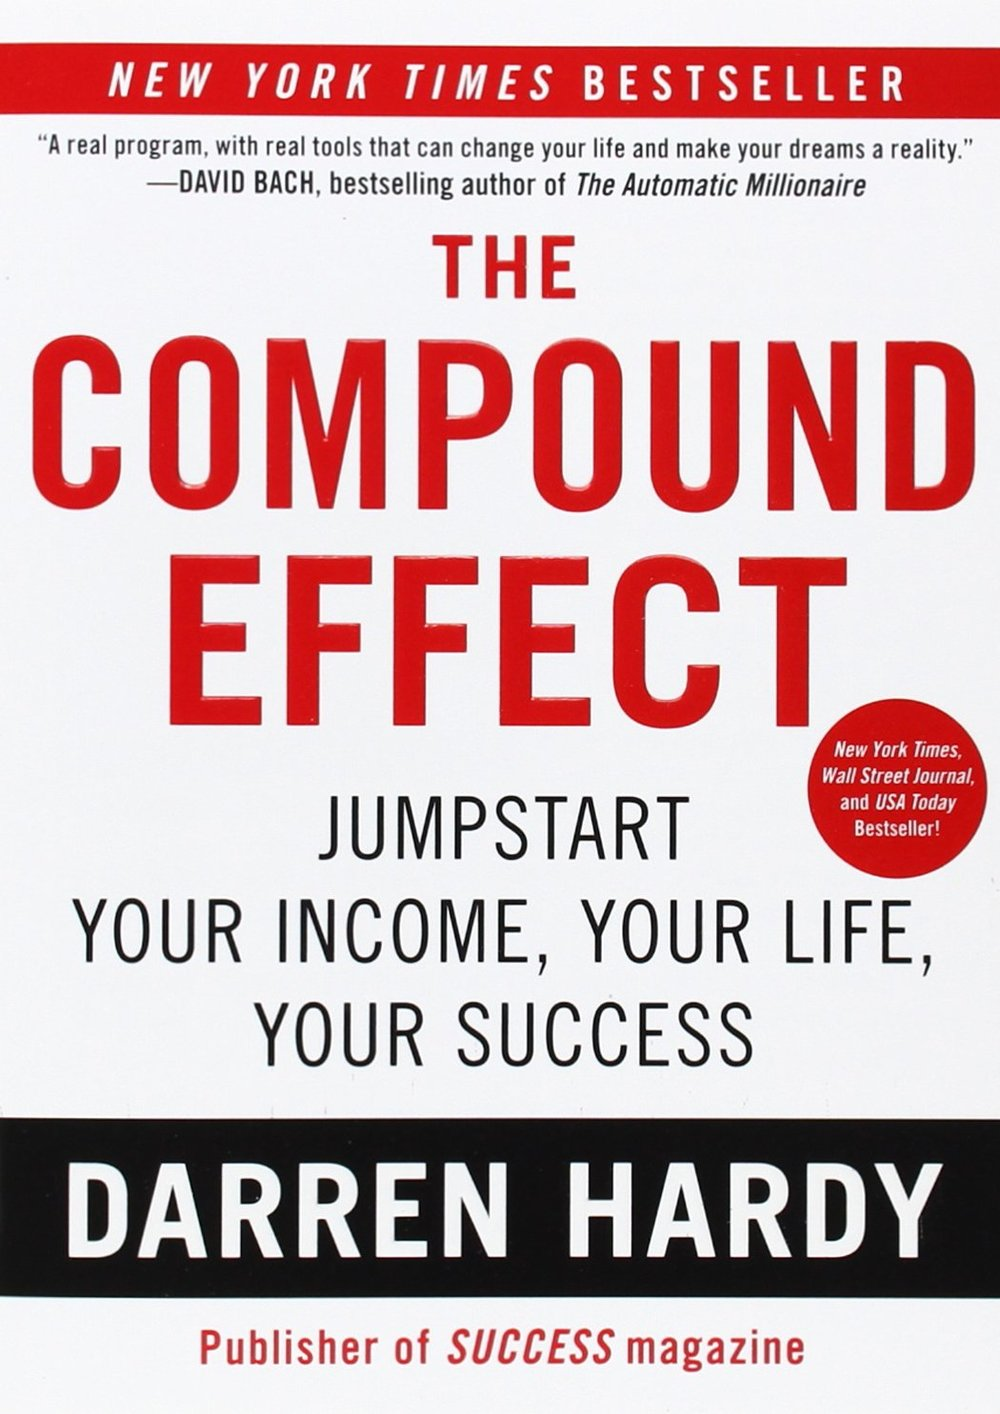 darren hardy, the compound effect, erica casnter